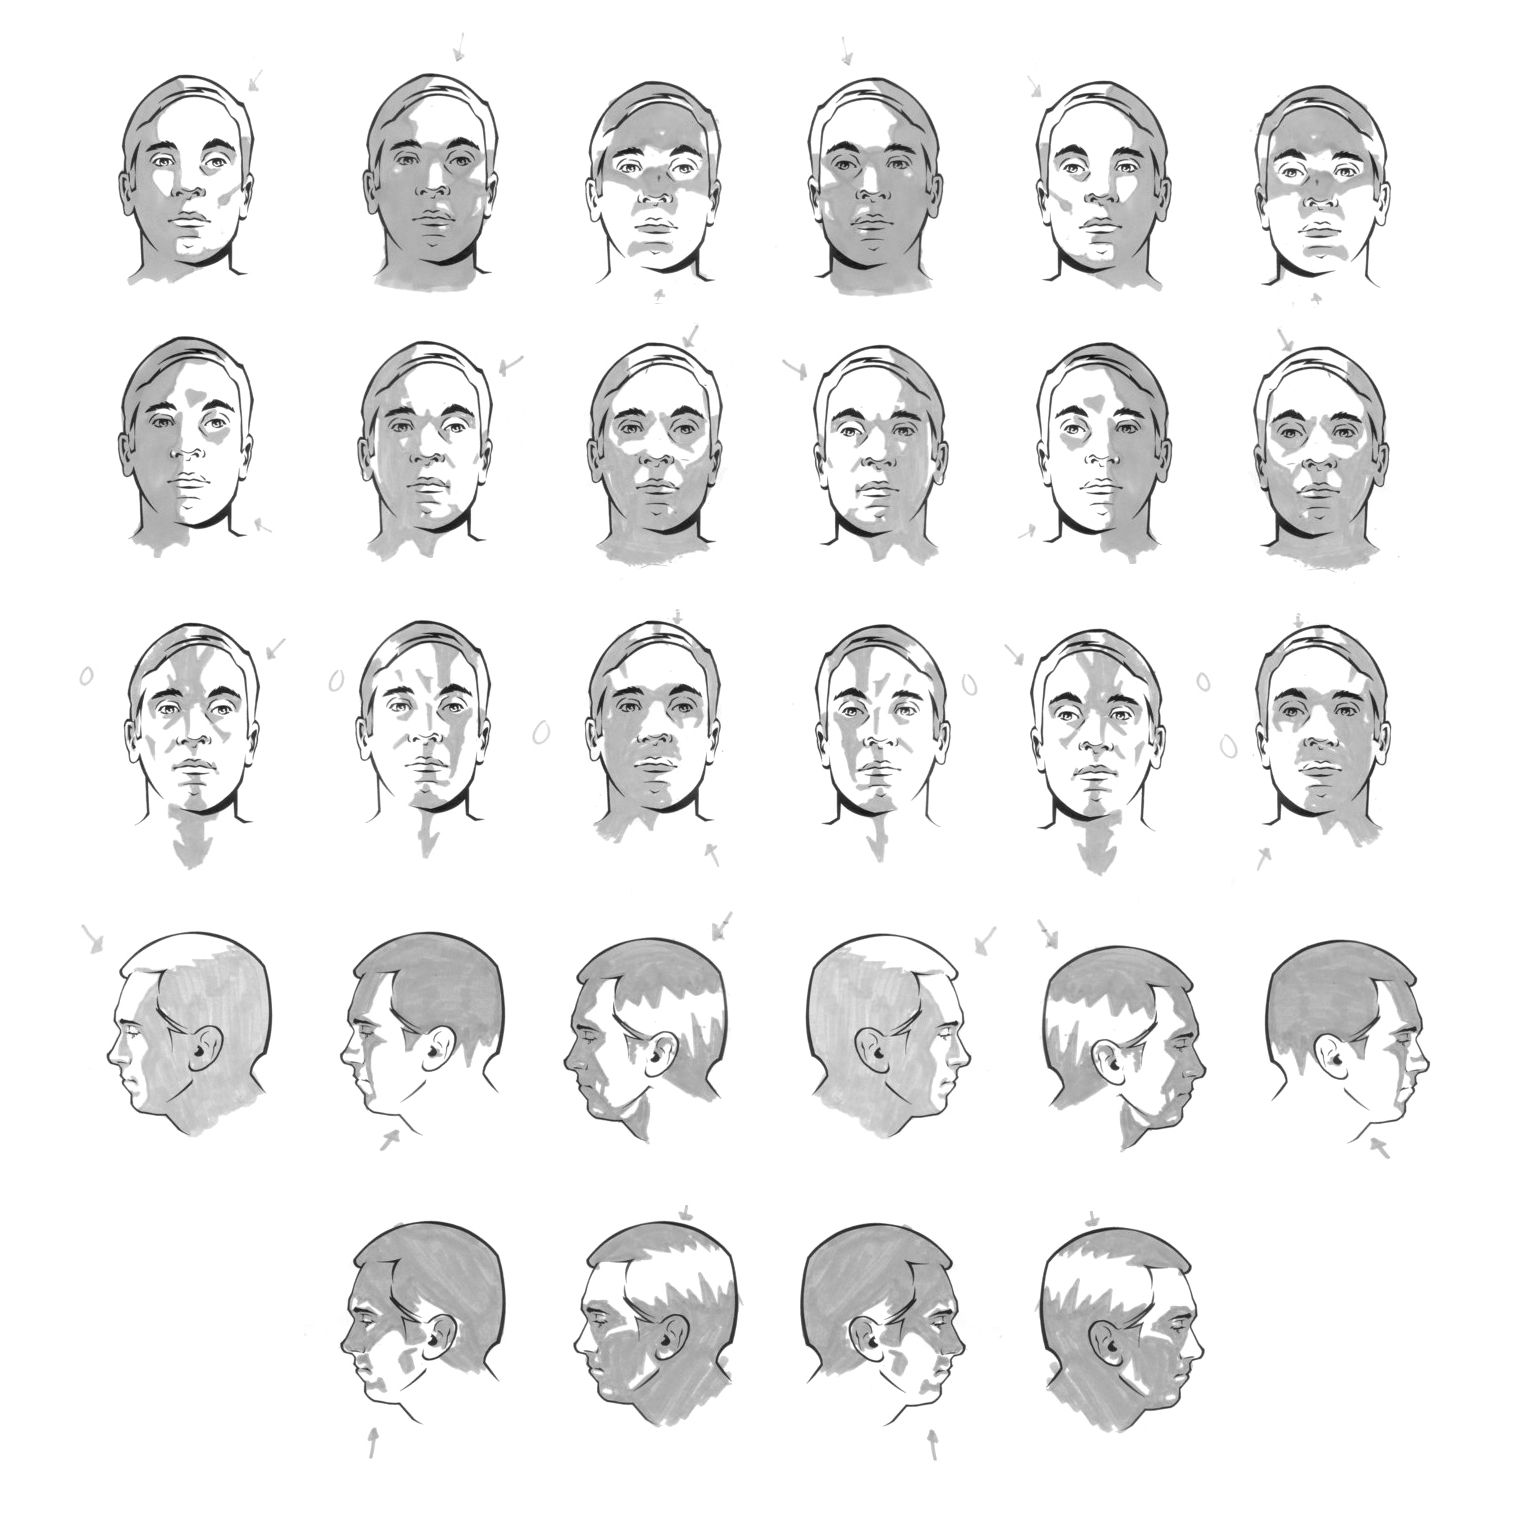 Face Male Shading Basic Planes Reference Sheet Art By Durwin Talon Marker Tones By Charlie Kirchoff Blo Shadow Drawing Shading Faces Shadow Face